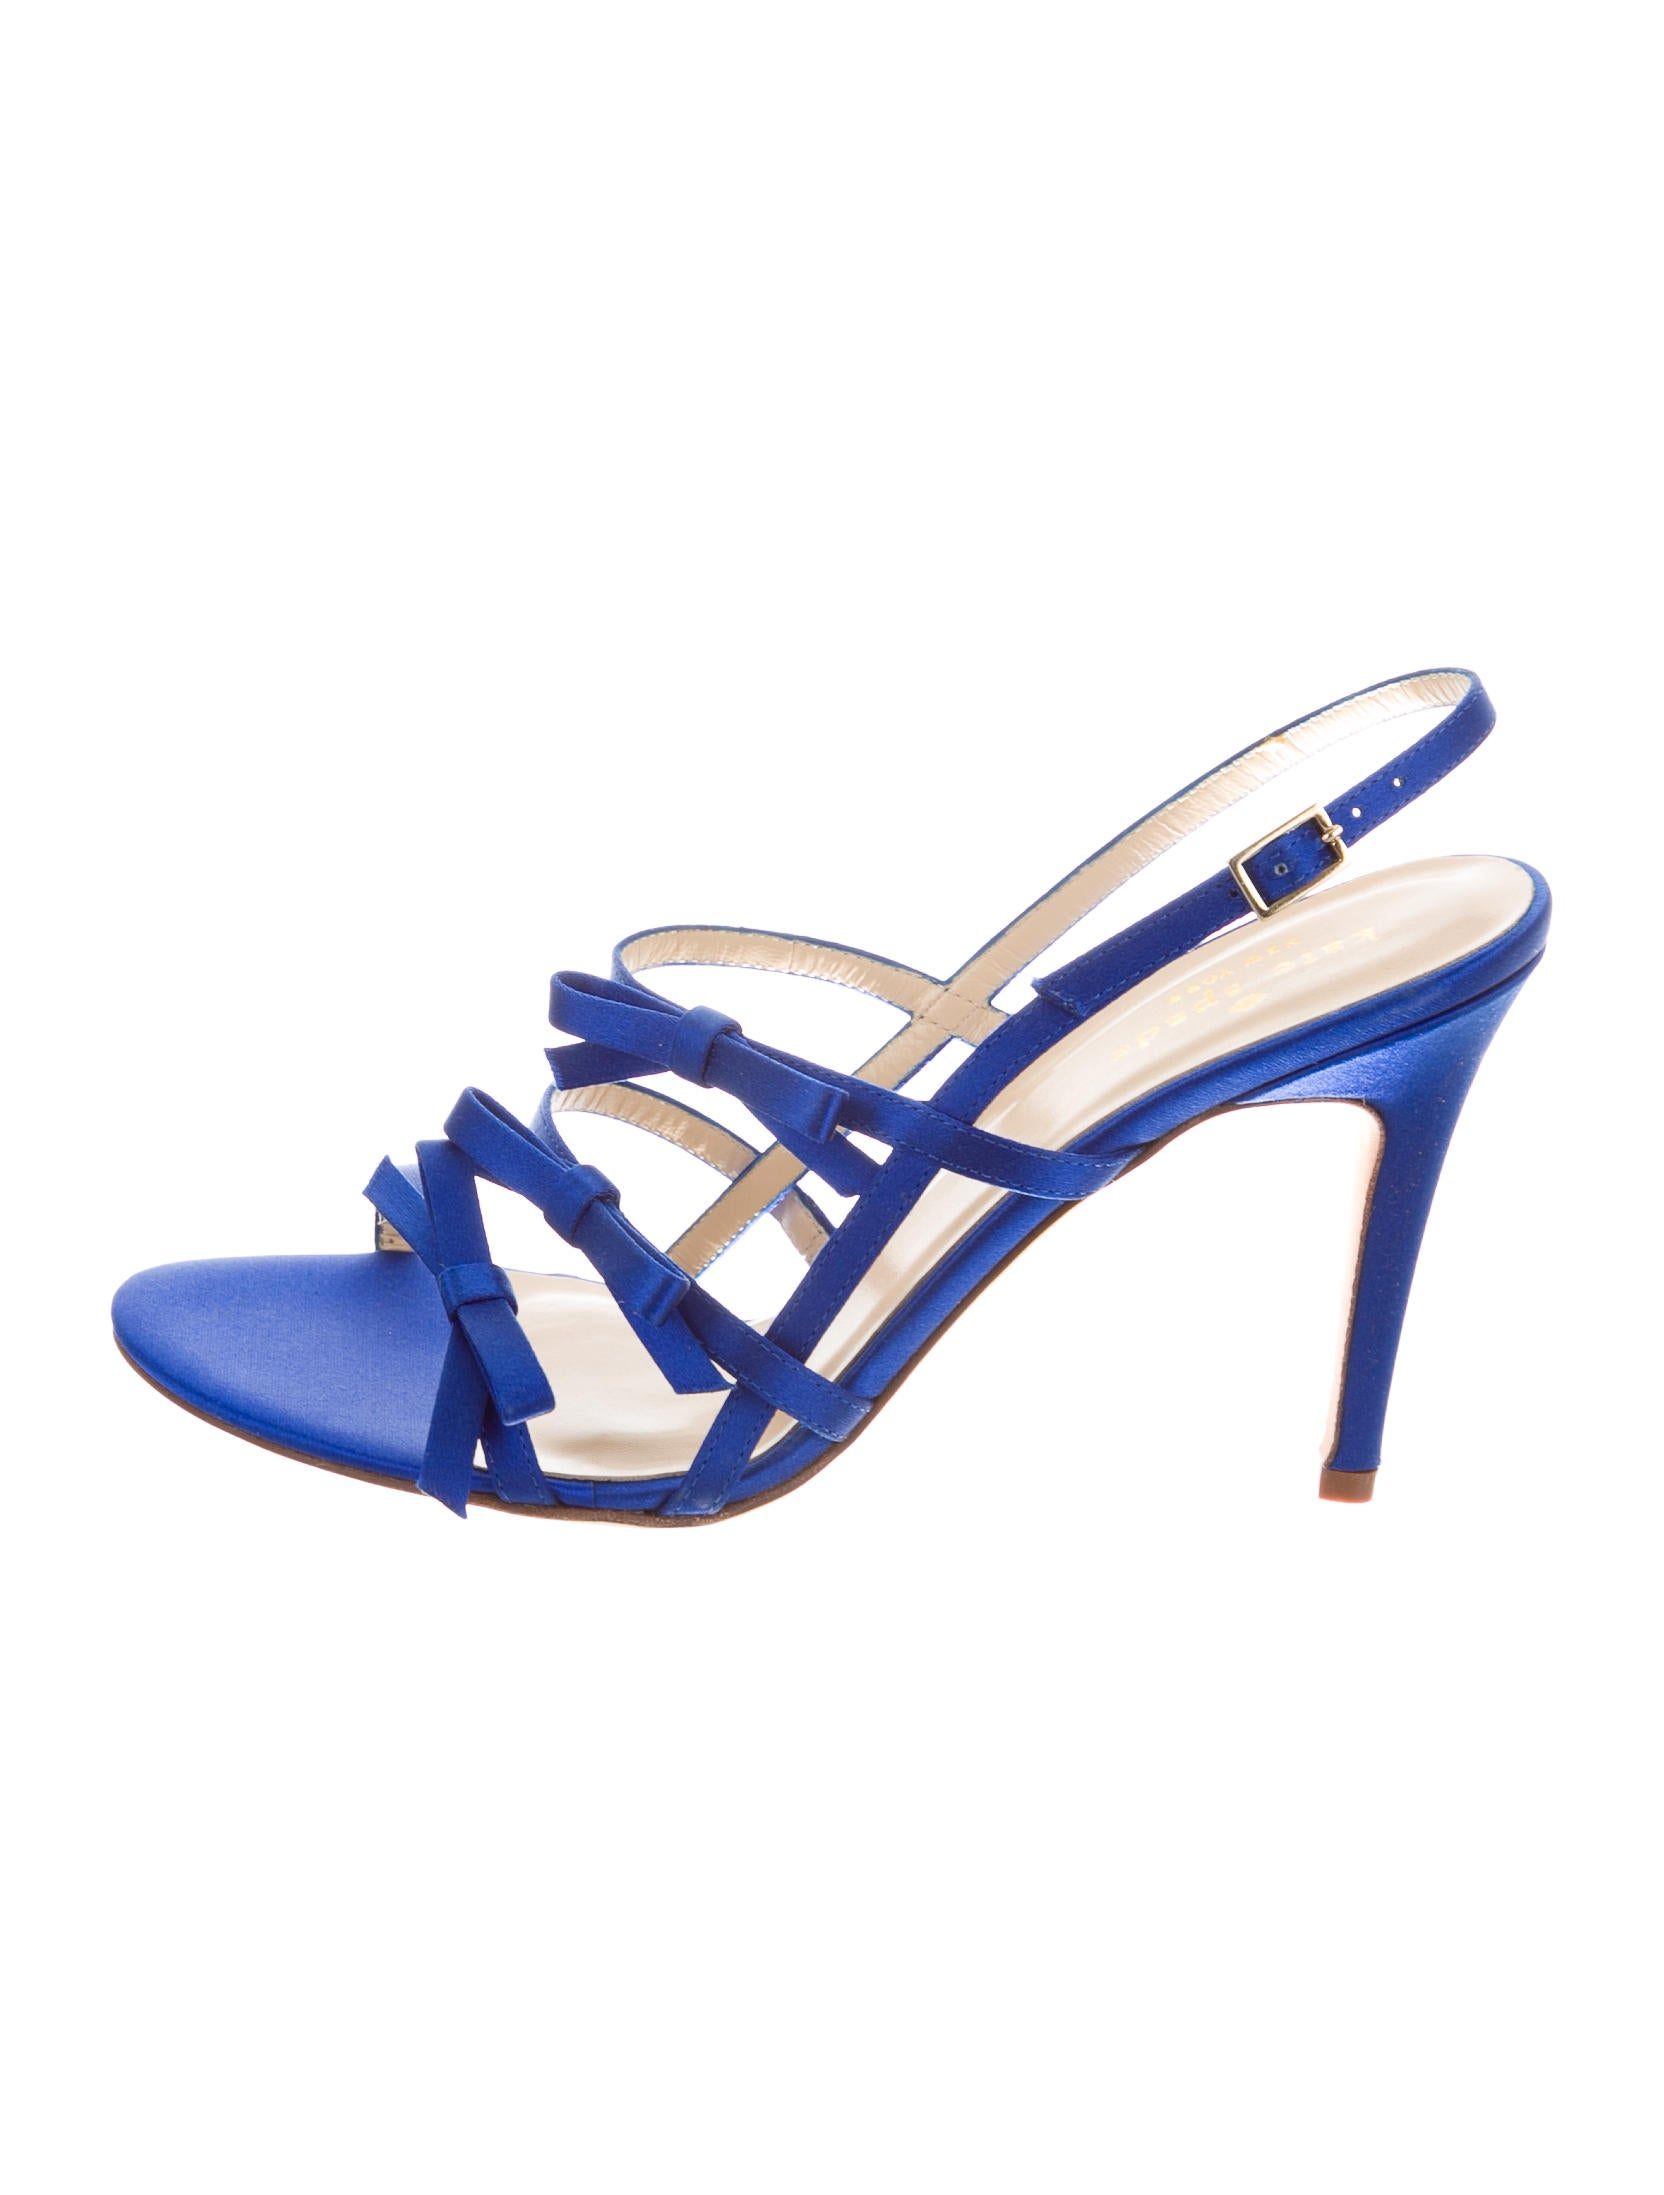 cheap sale with paypal cheap sale online Kate Spade New York Satin Bow-Accented Sandals hpZKgUG31